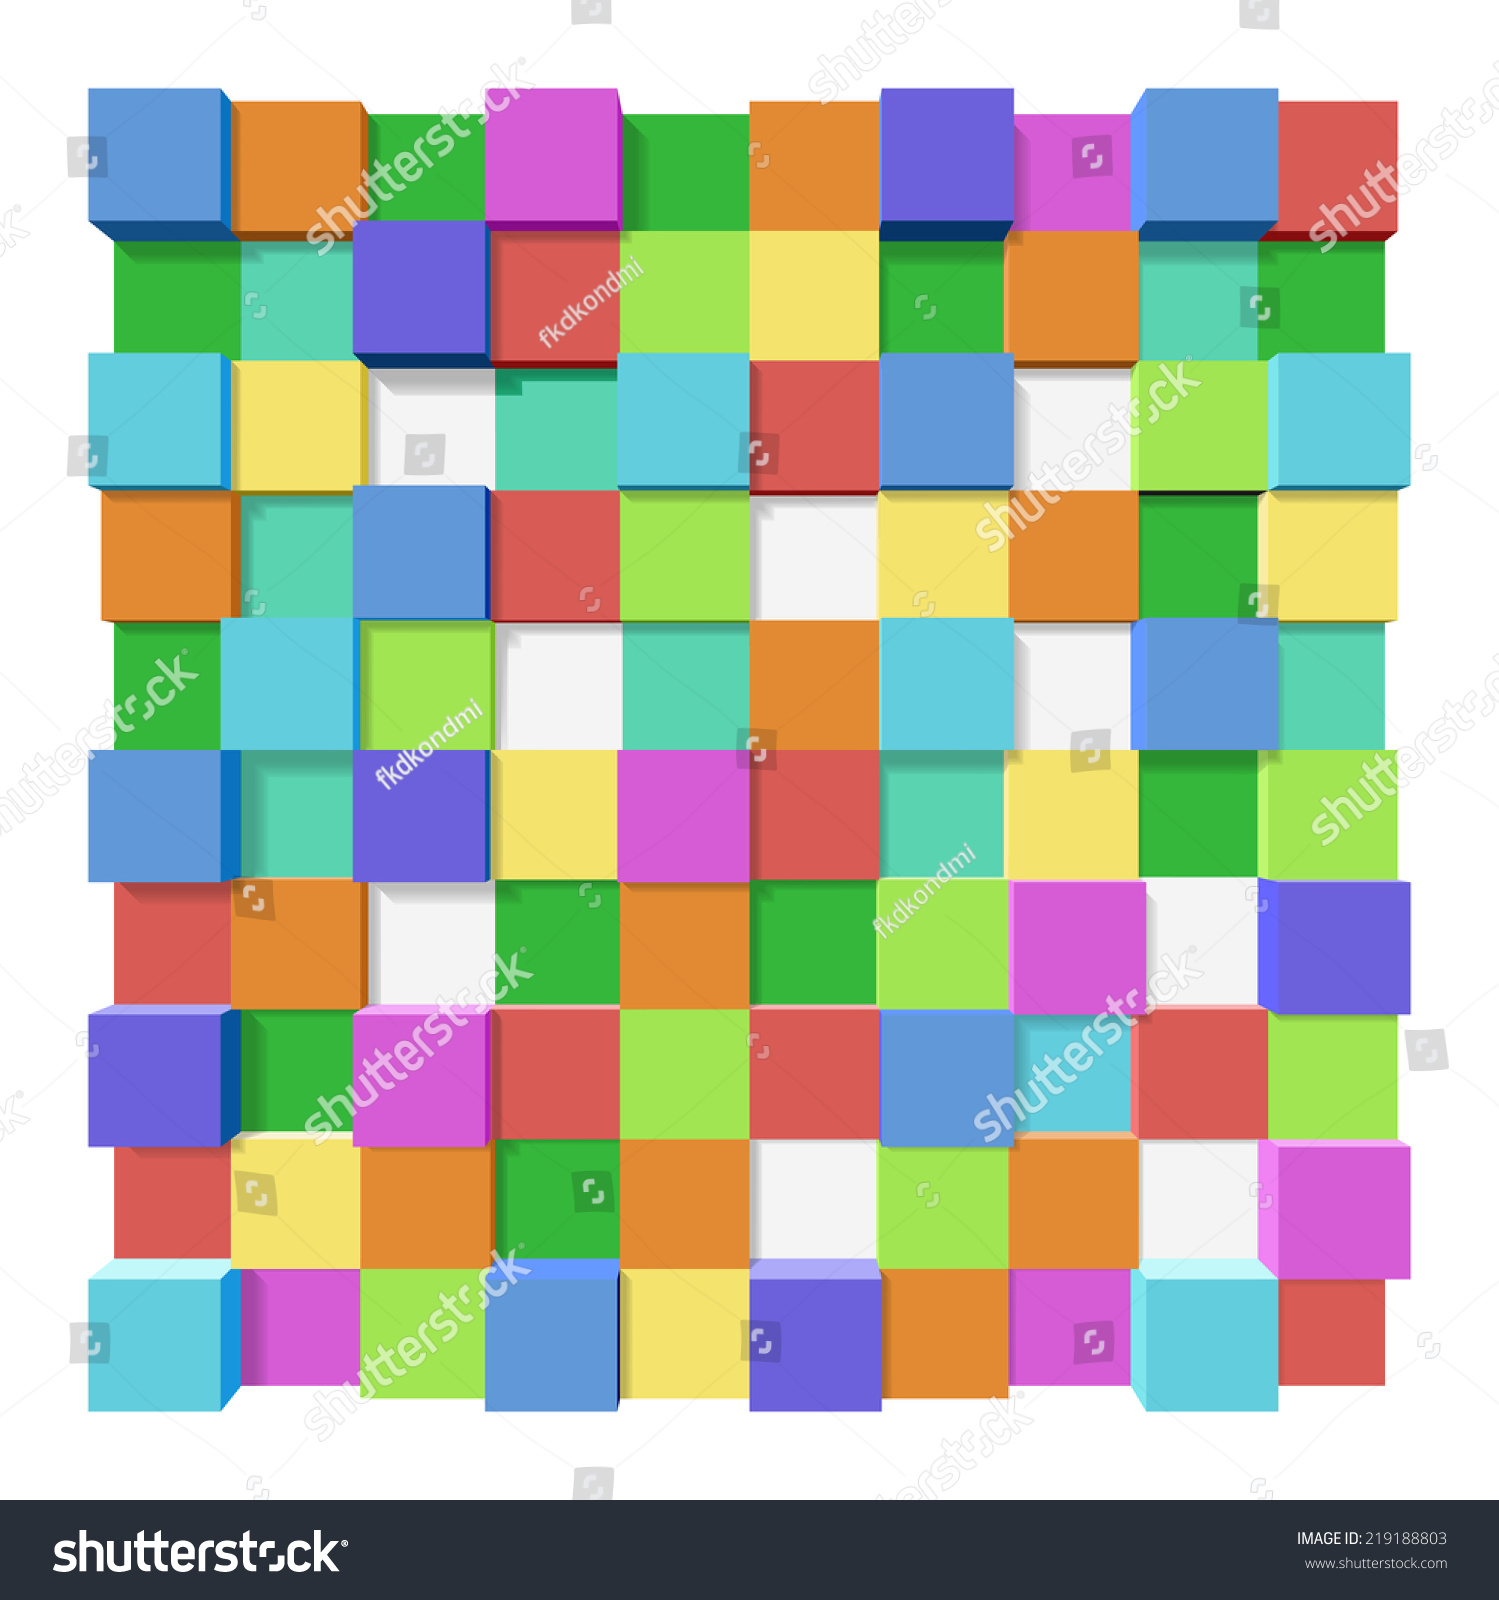 Colored Blocks Different Levels Abstract Background Stock ...